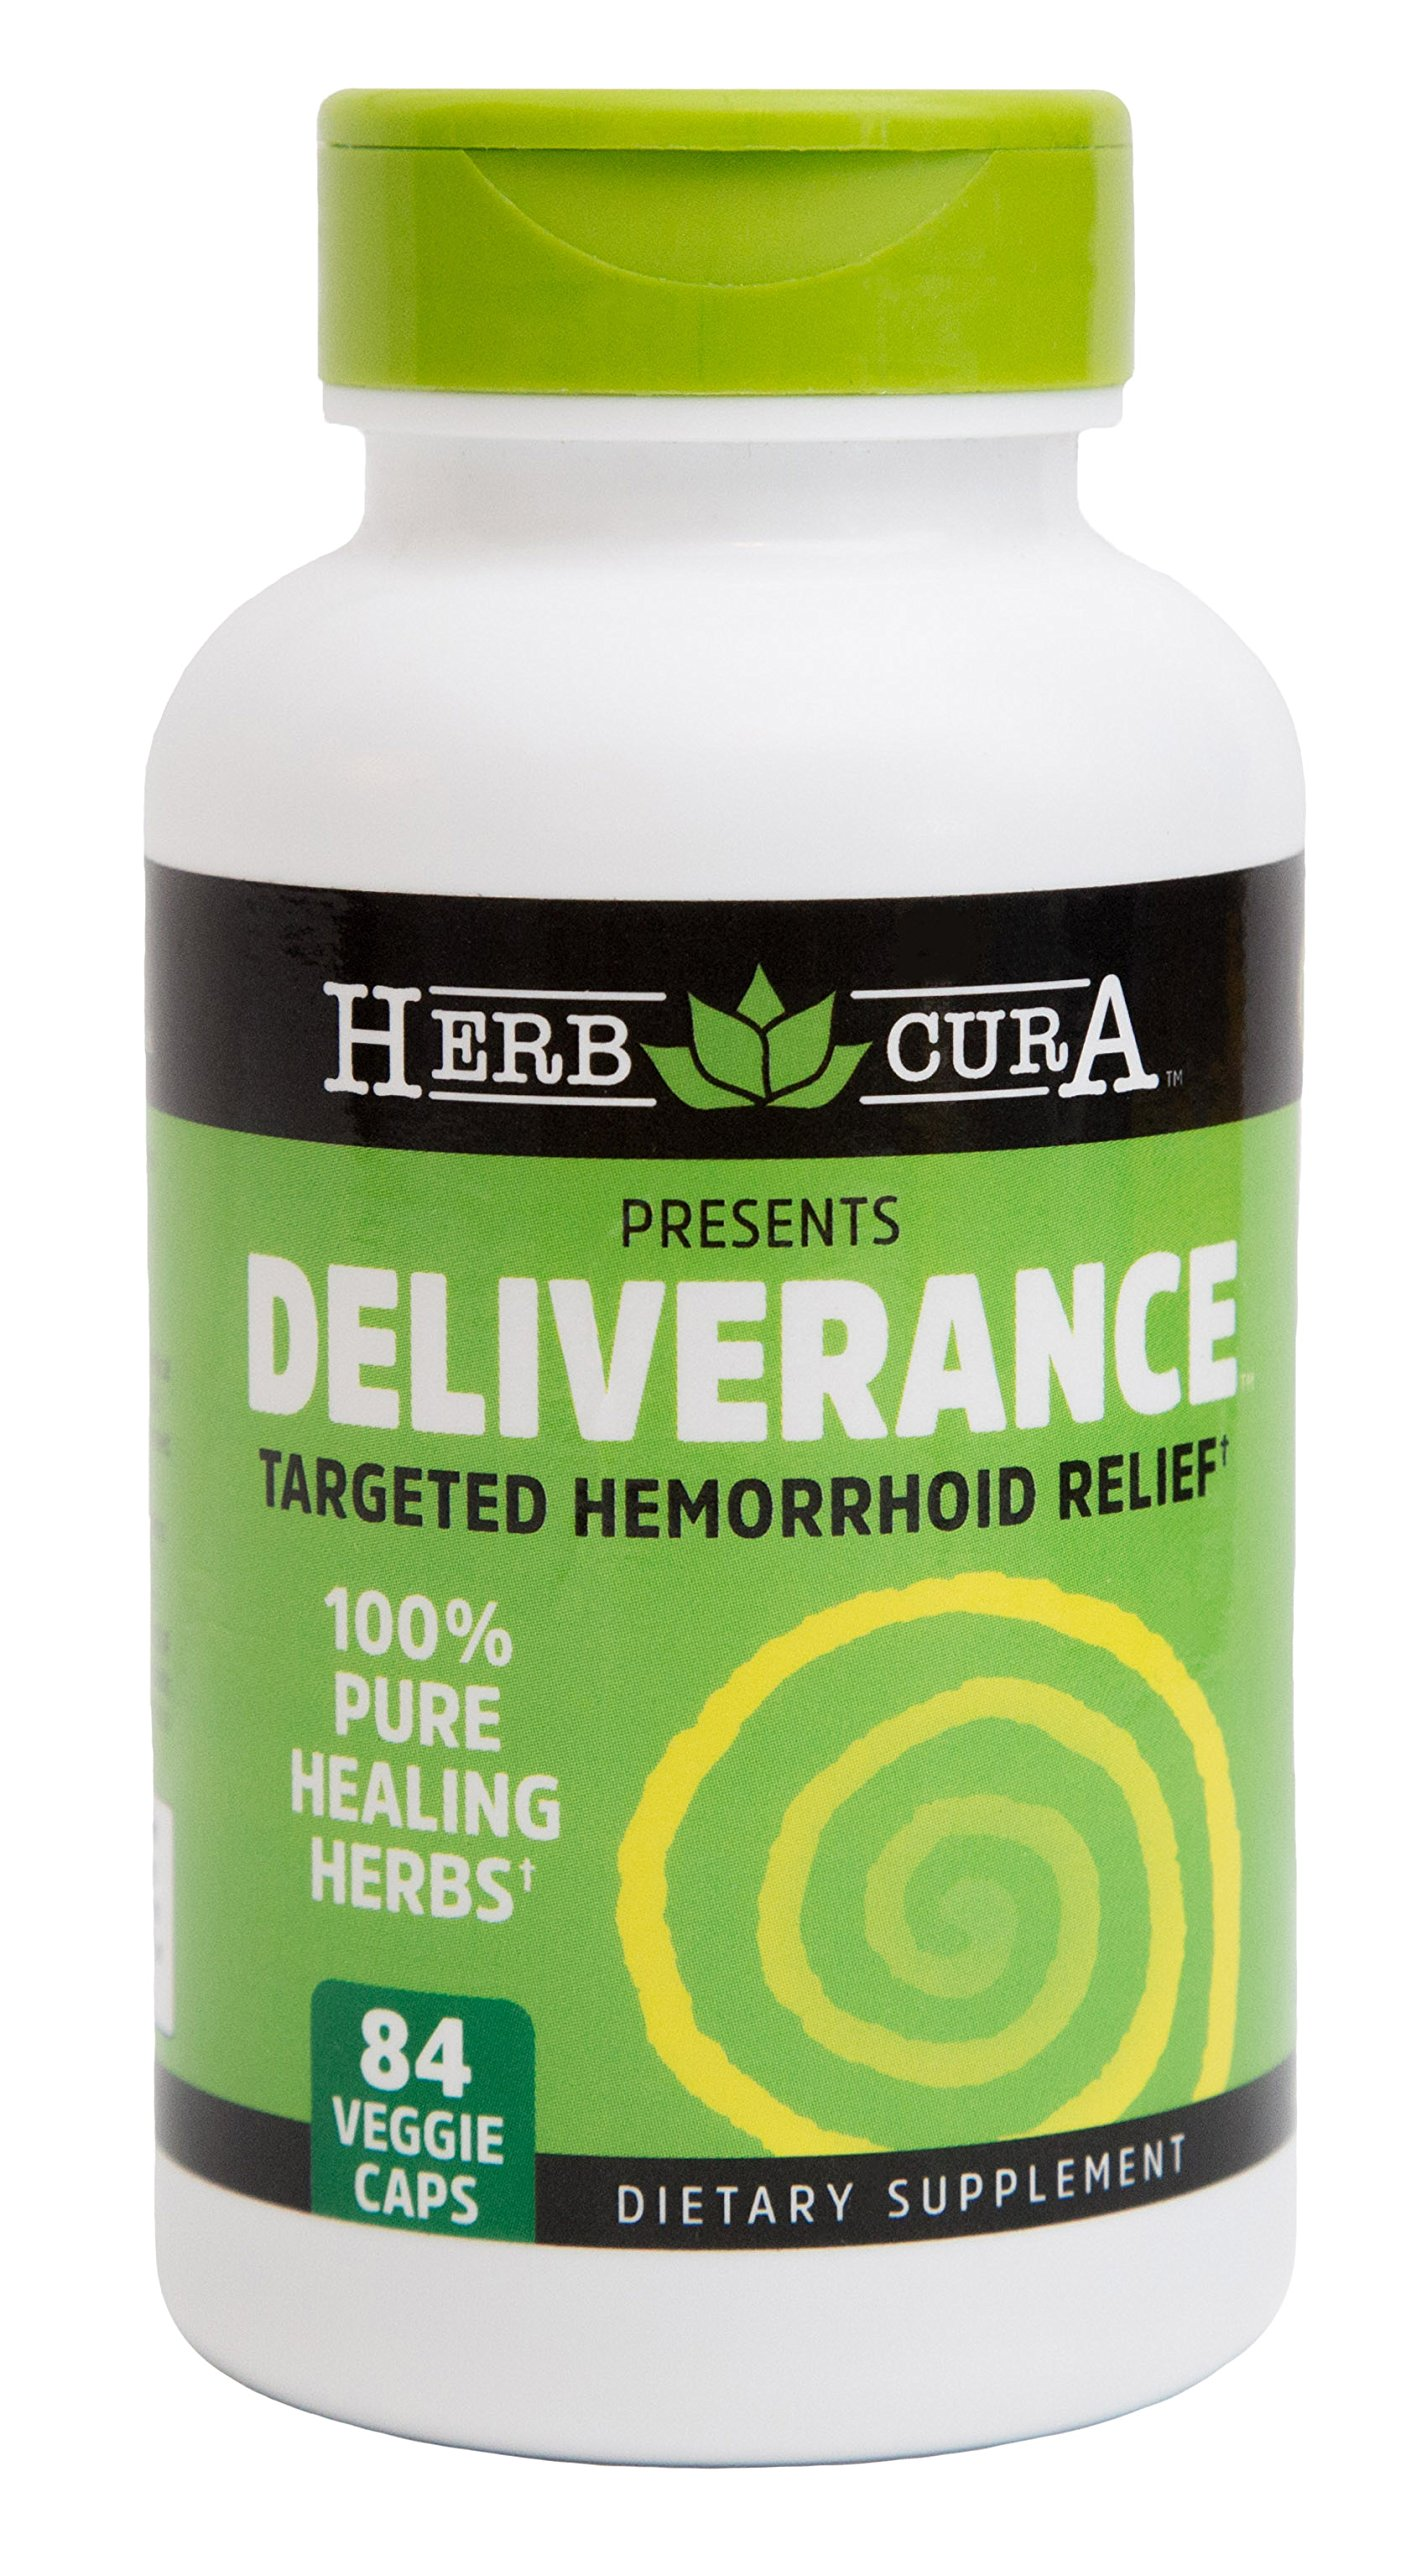 Herbcura's Hemorrhoid Treatment DELIVERANCE for Hemorrhoid, Hemorrhoids & Piles. Natural Hemorrhoid Treatment.